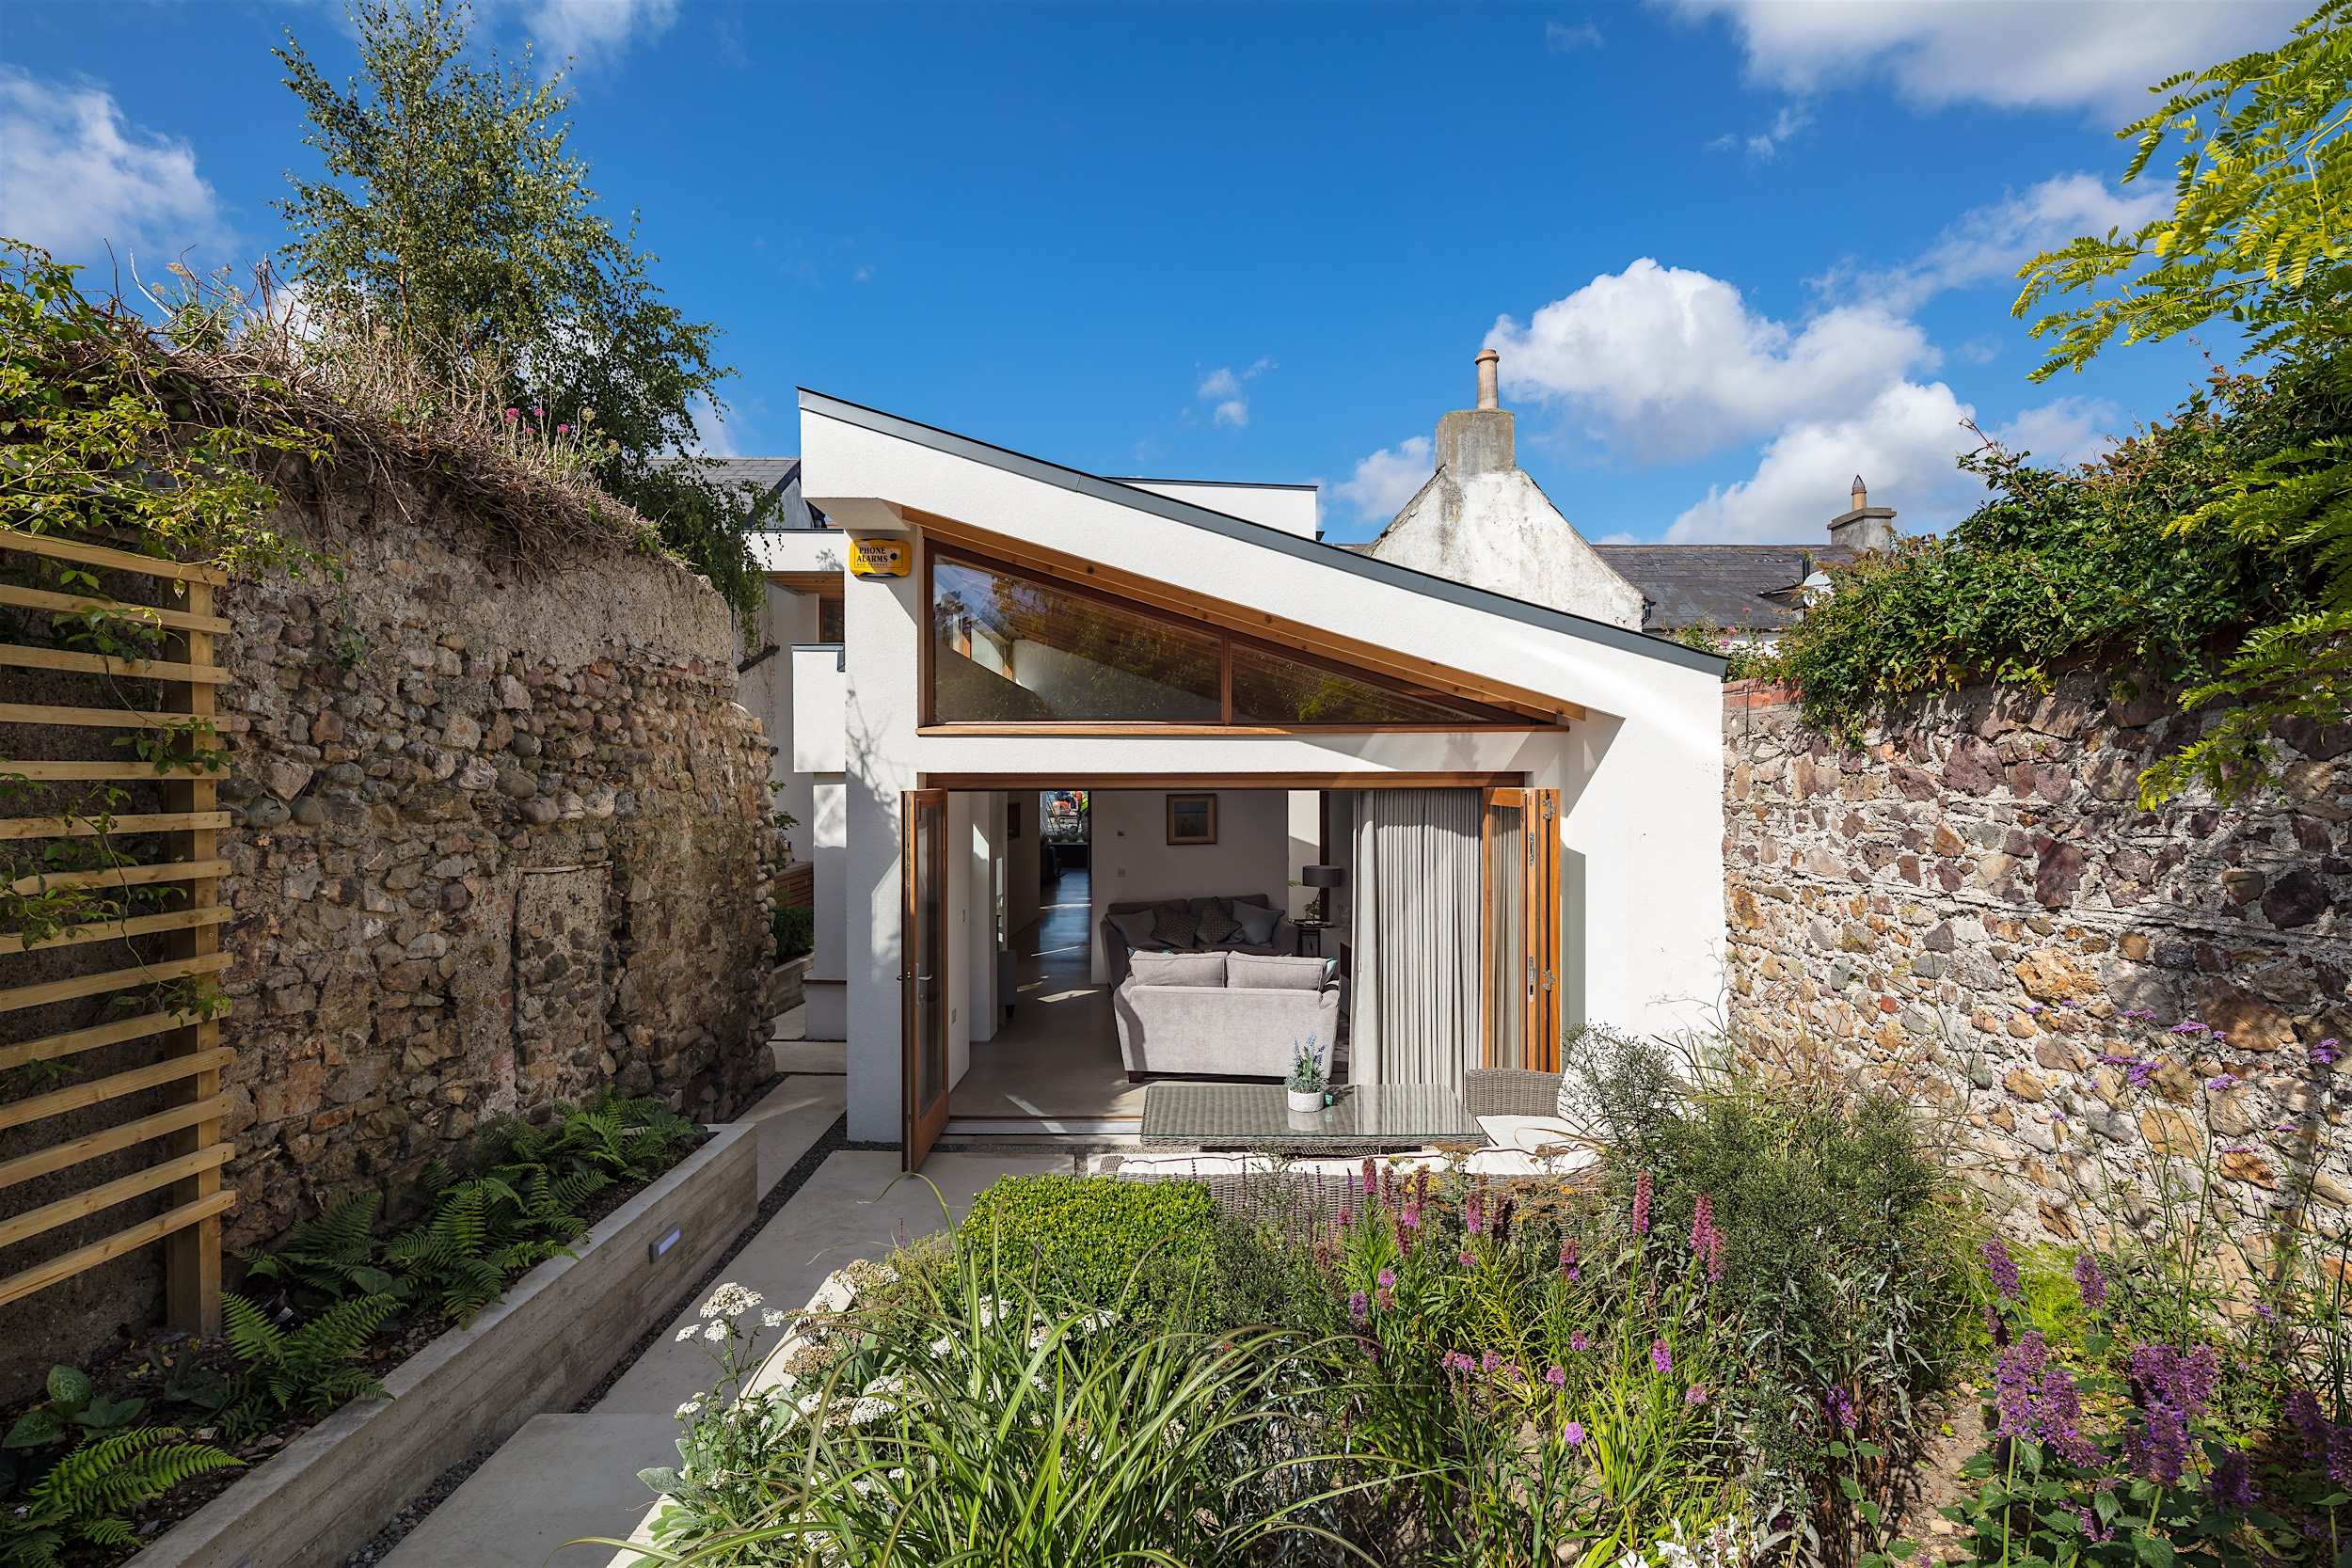 BRENNAN-FURLONG-RENOVATION-EXTENSION-SUTTON-DUBLIN13.jpg